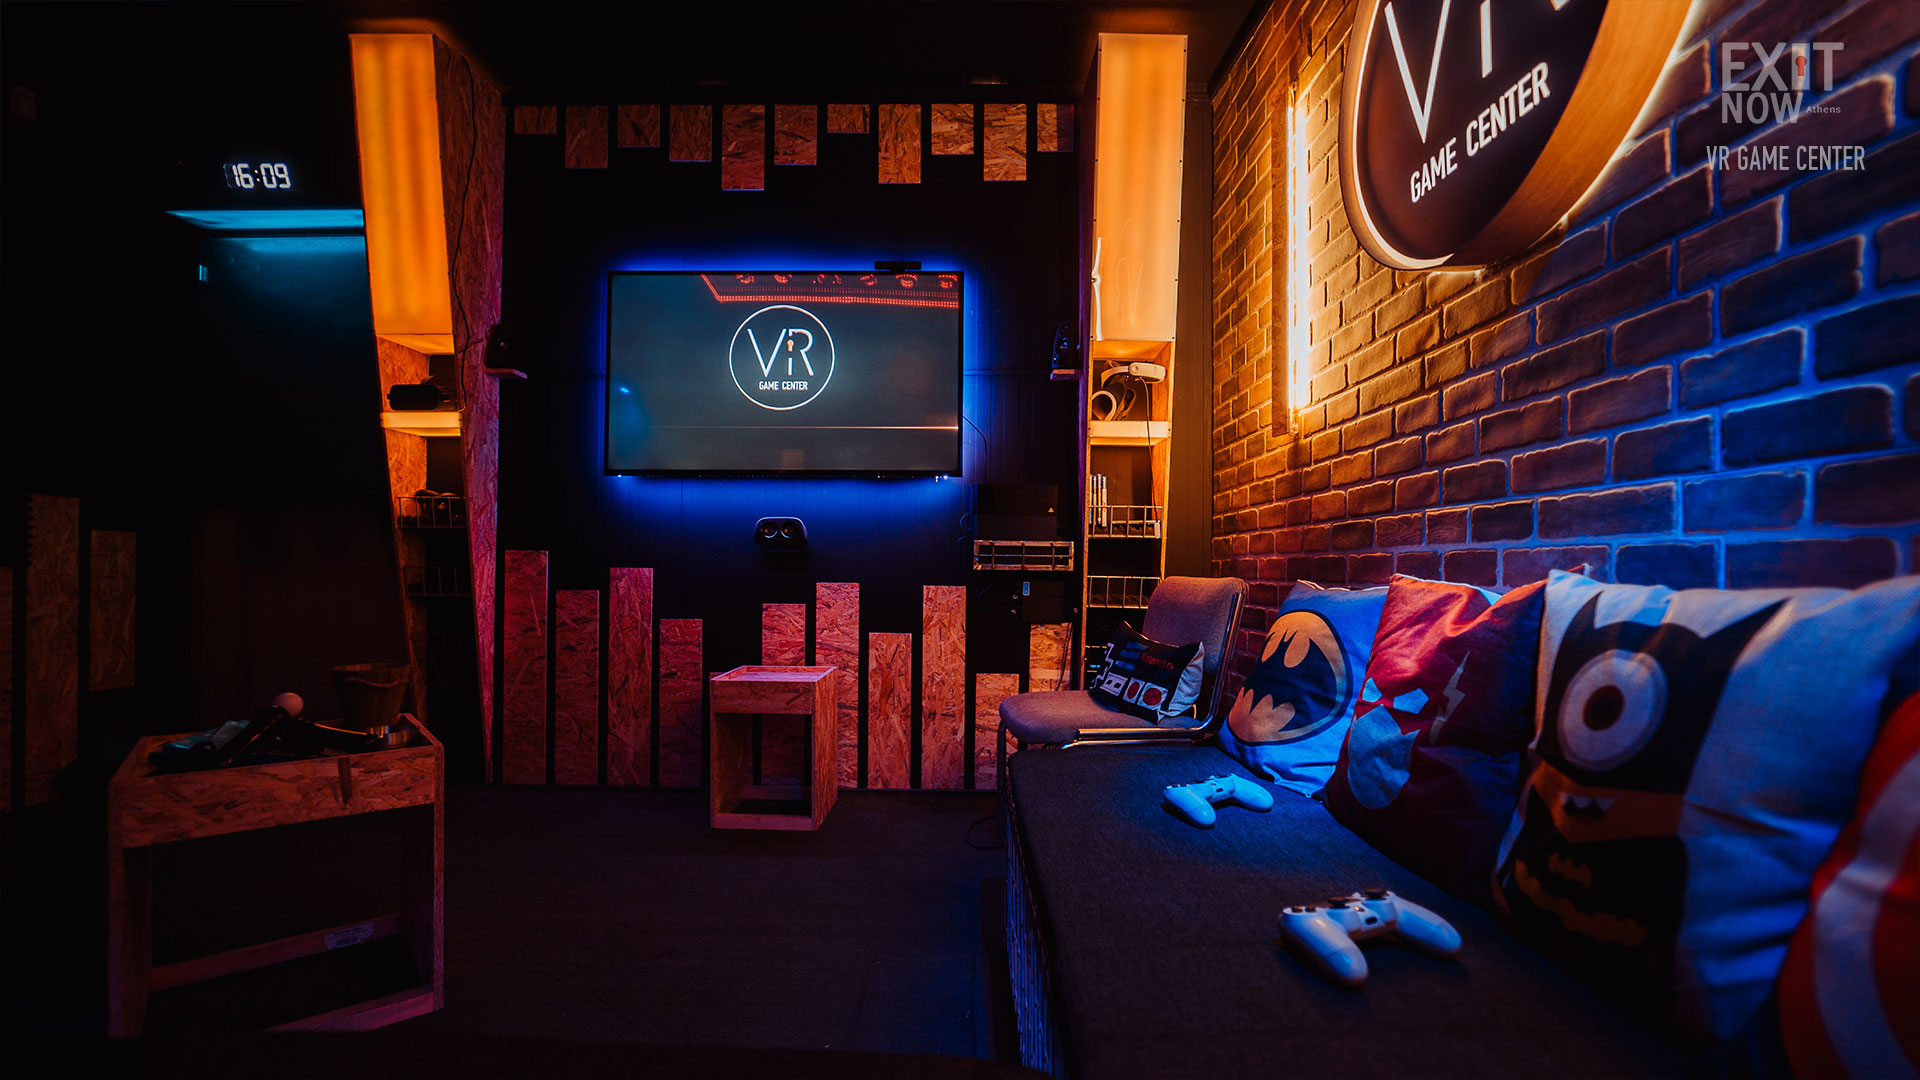 VR GAME CENTER EXIT NOW 3 | EXIT NOW | Live Game Experience | Escape Room | Services